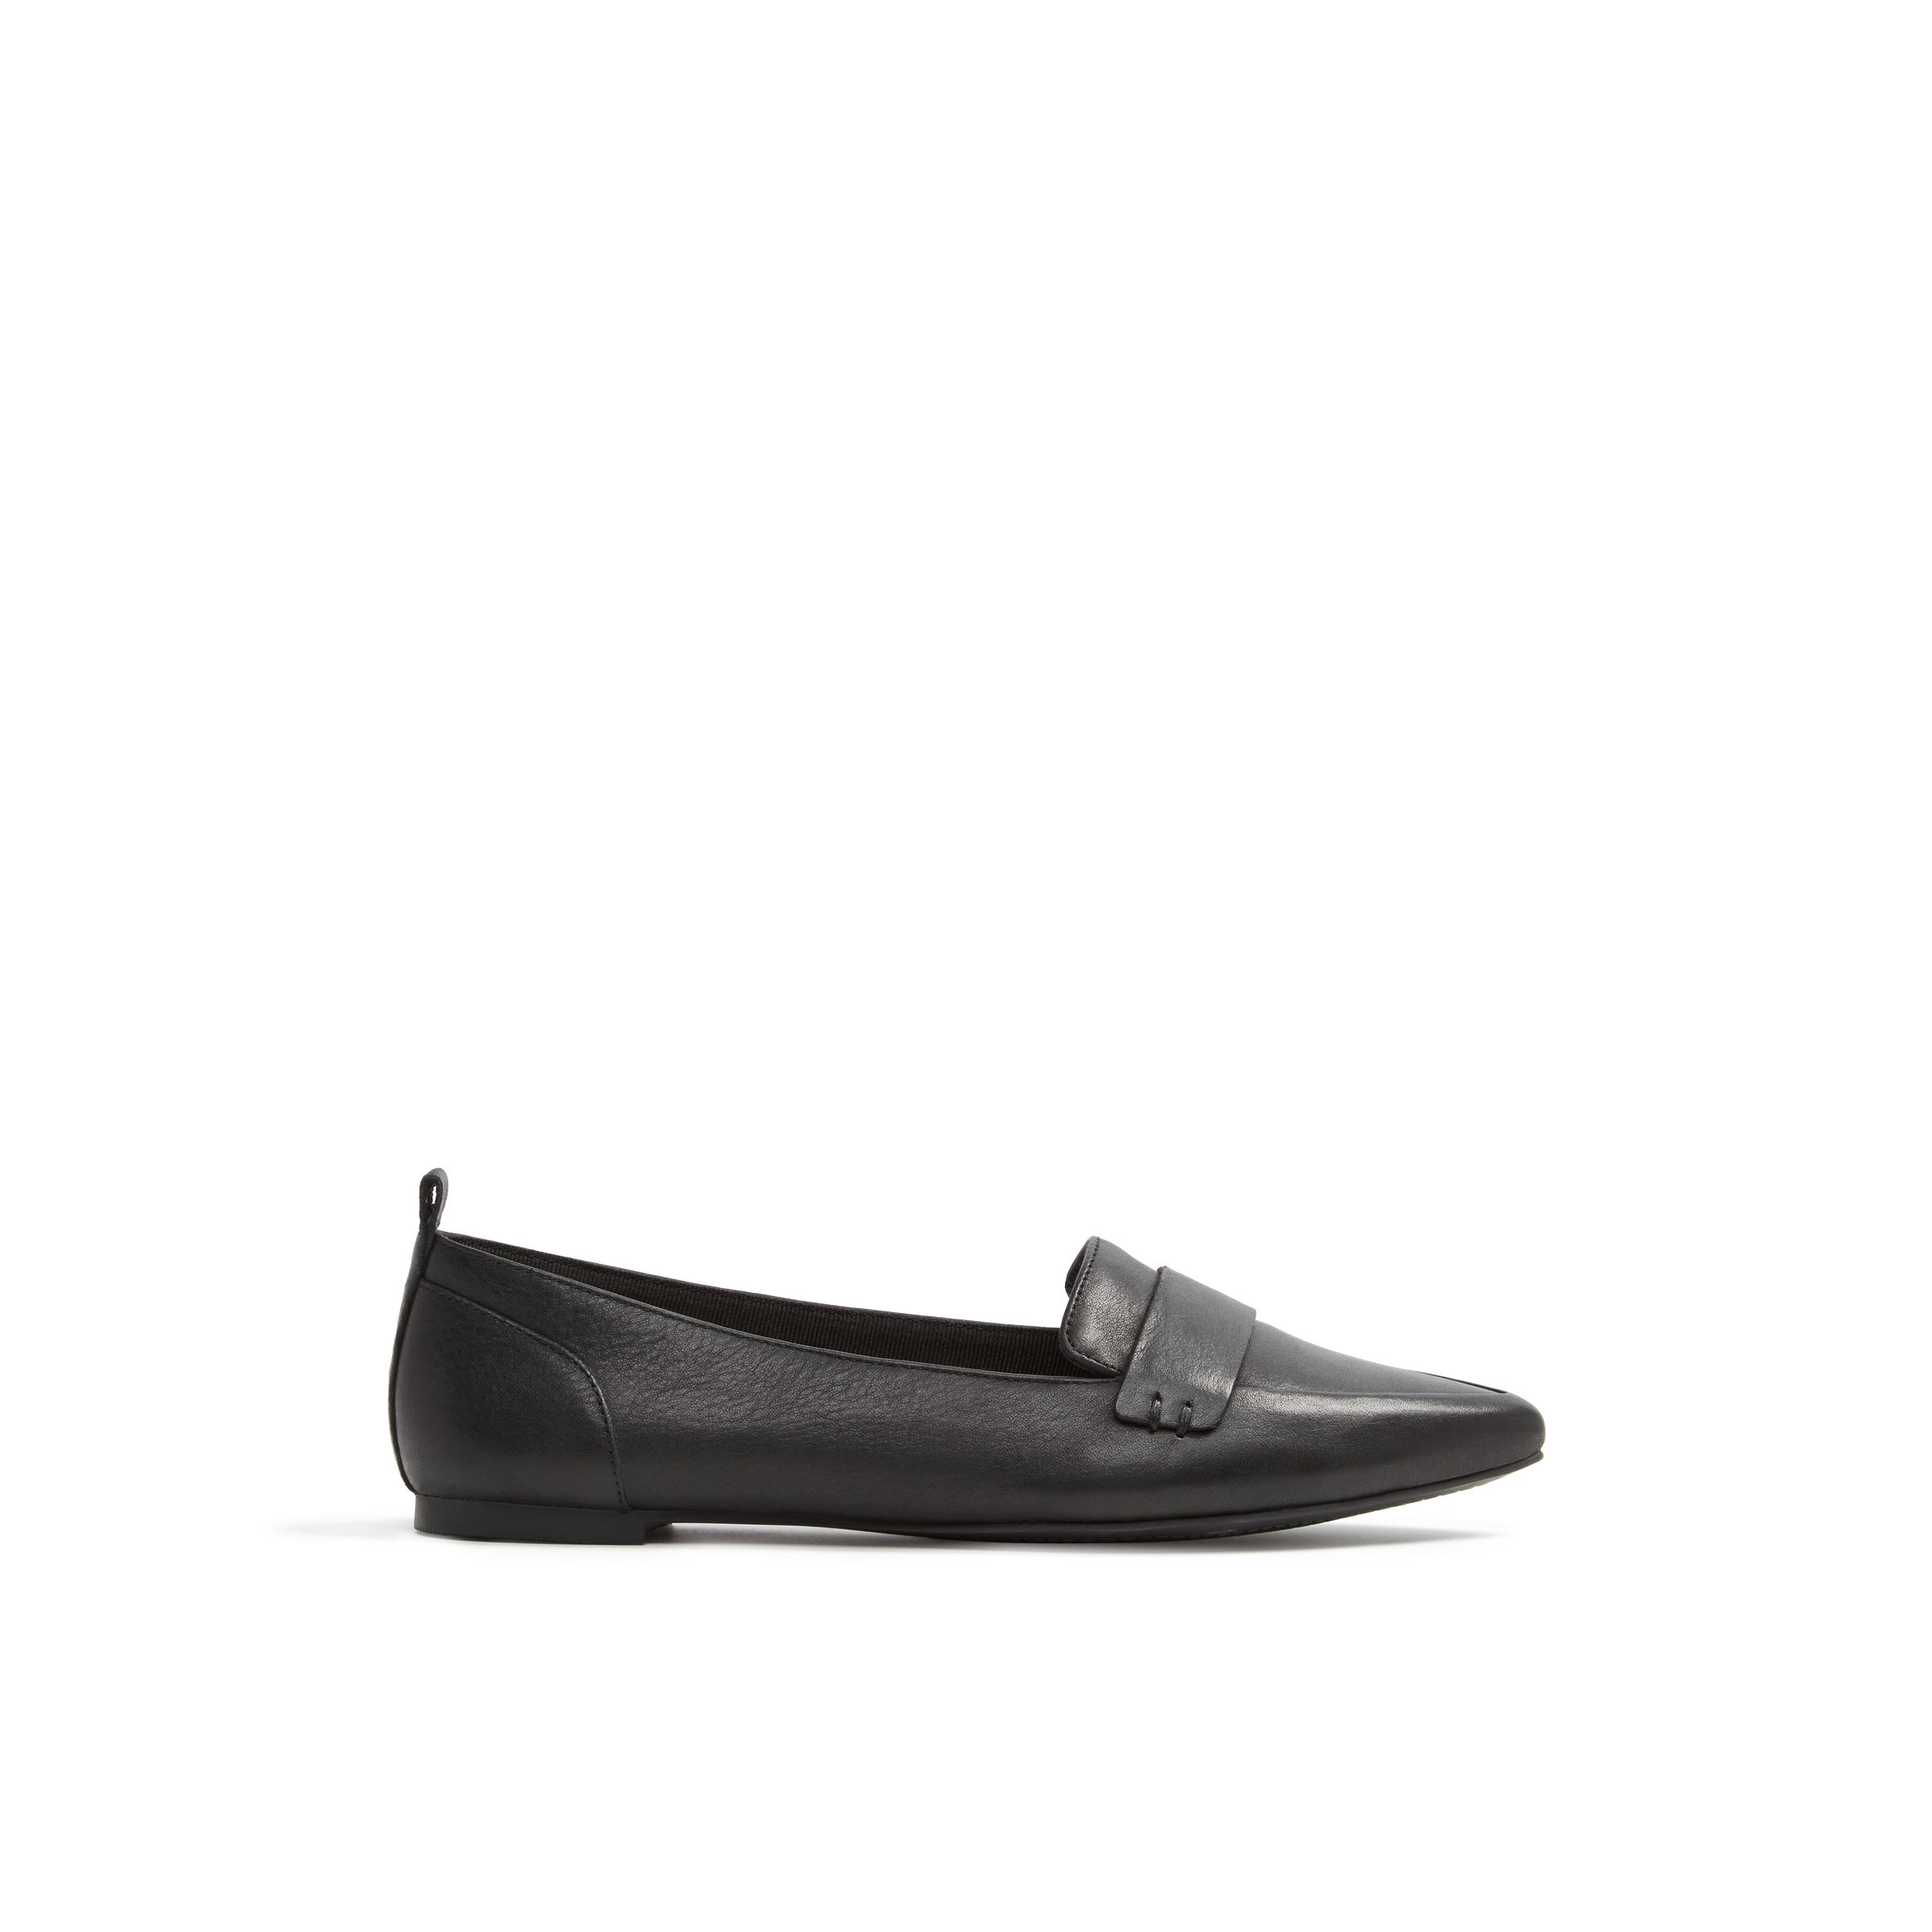 Aldo Cherryhill Pointy Toe Pump, Black